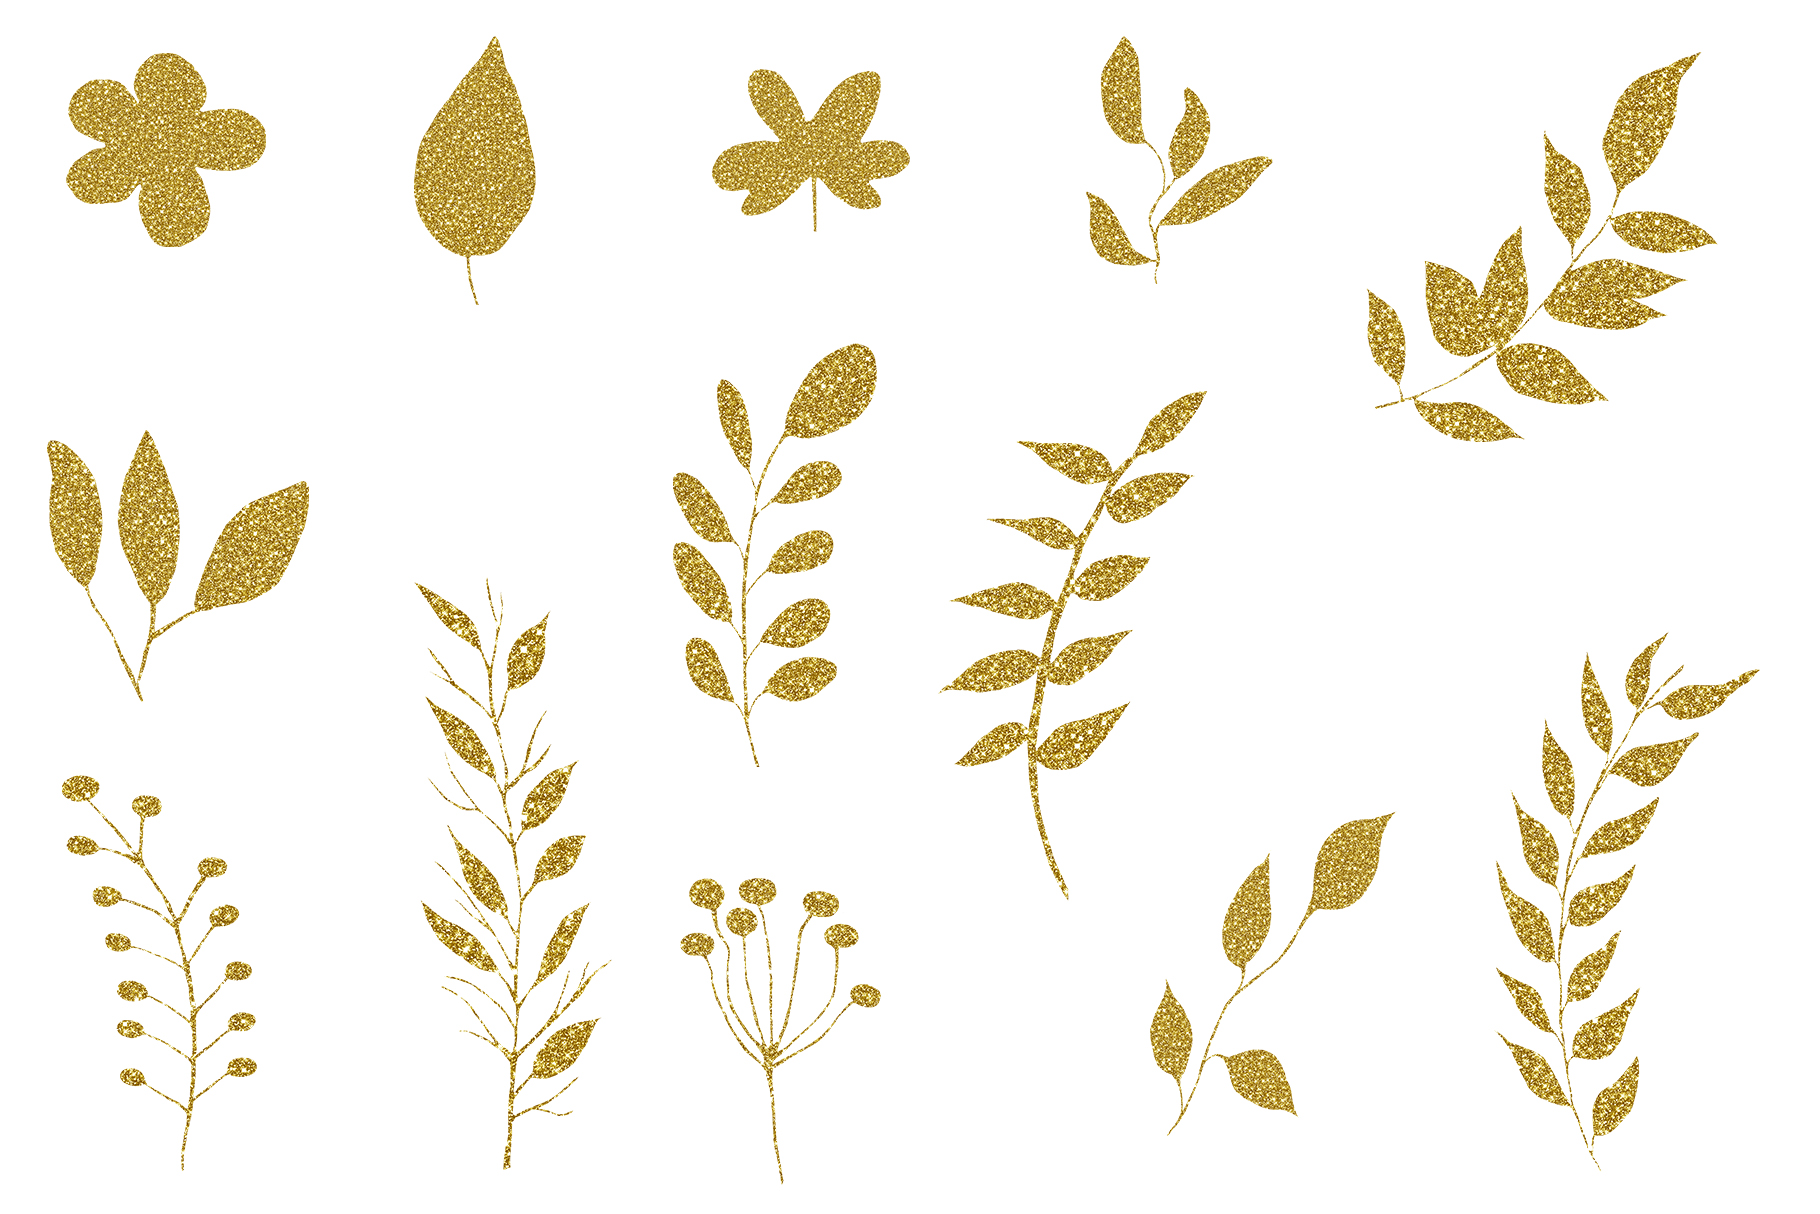 Gold Glitter leaves clipart, Floral Glitter Clipart example image 3